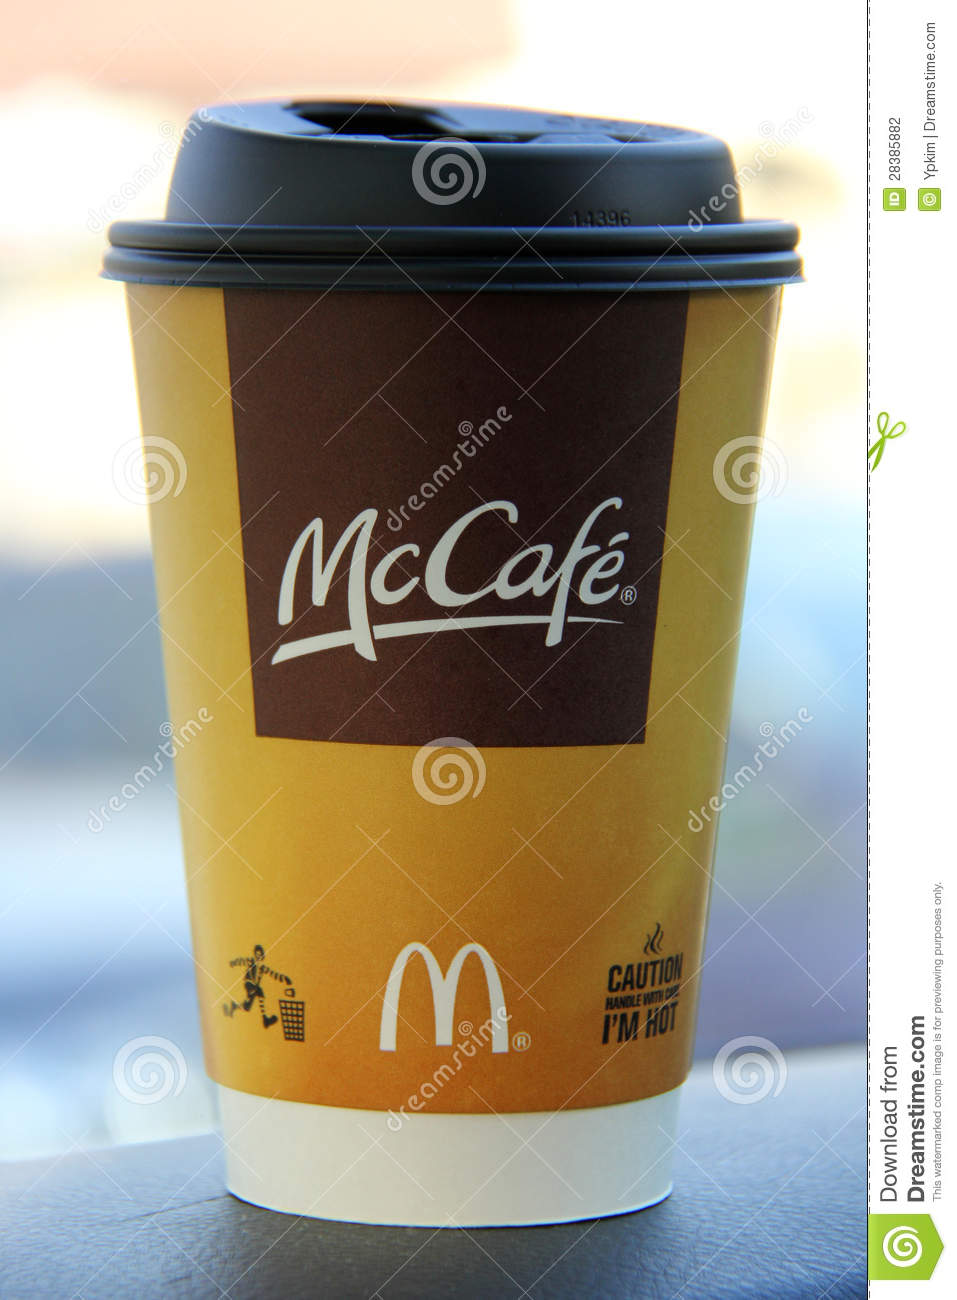 McDonald's May Enter Coffee Retail Market | Leadership | Business ...